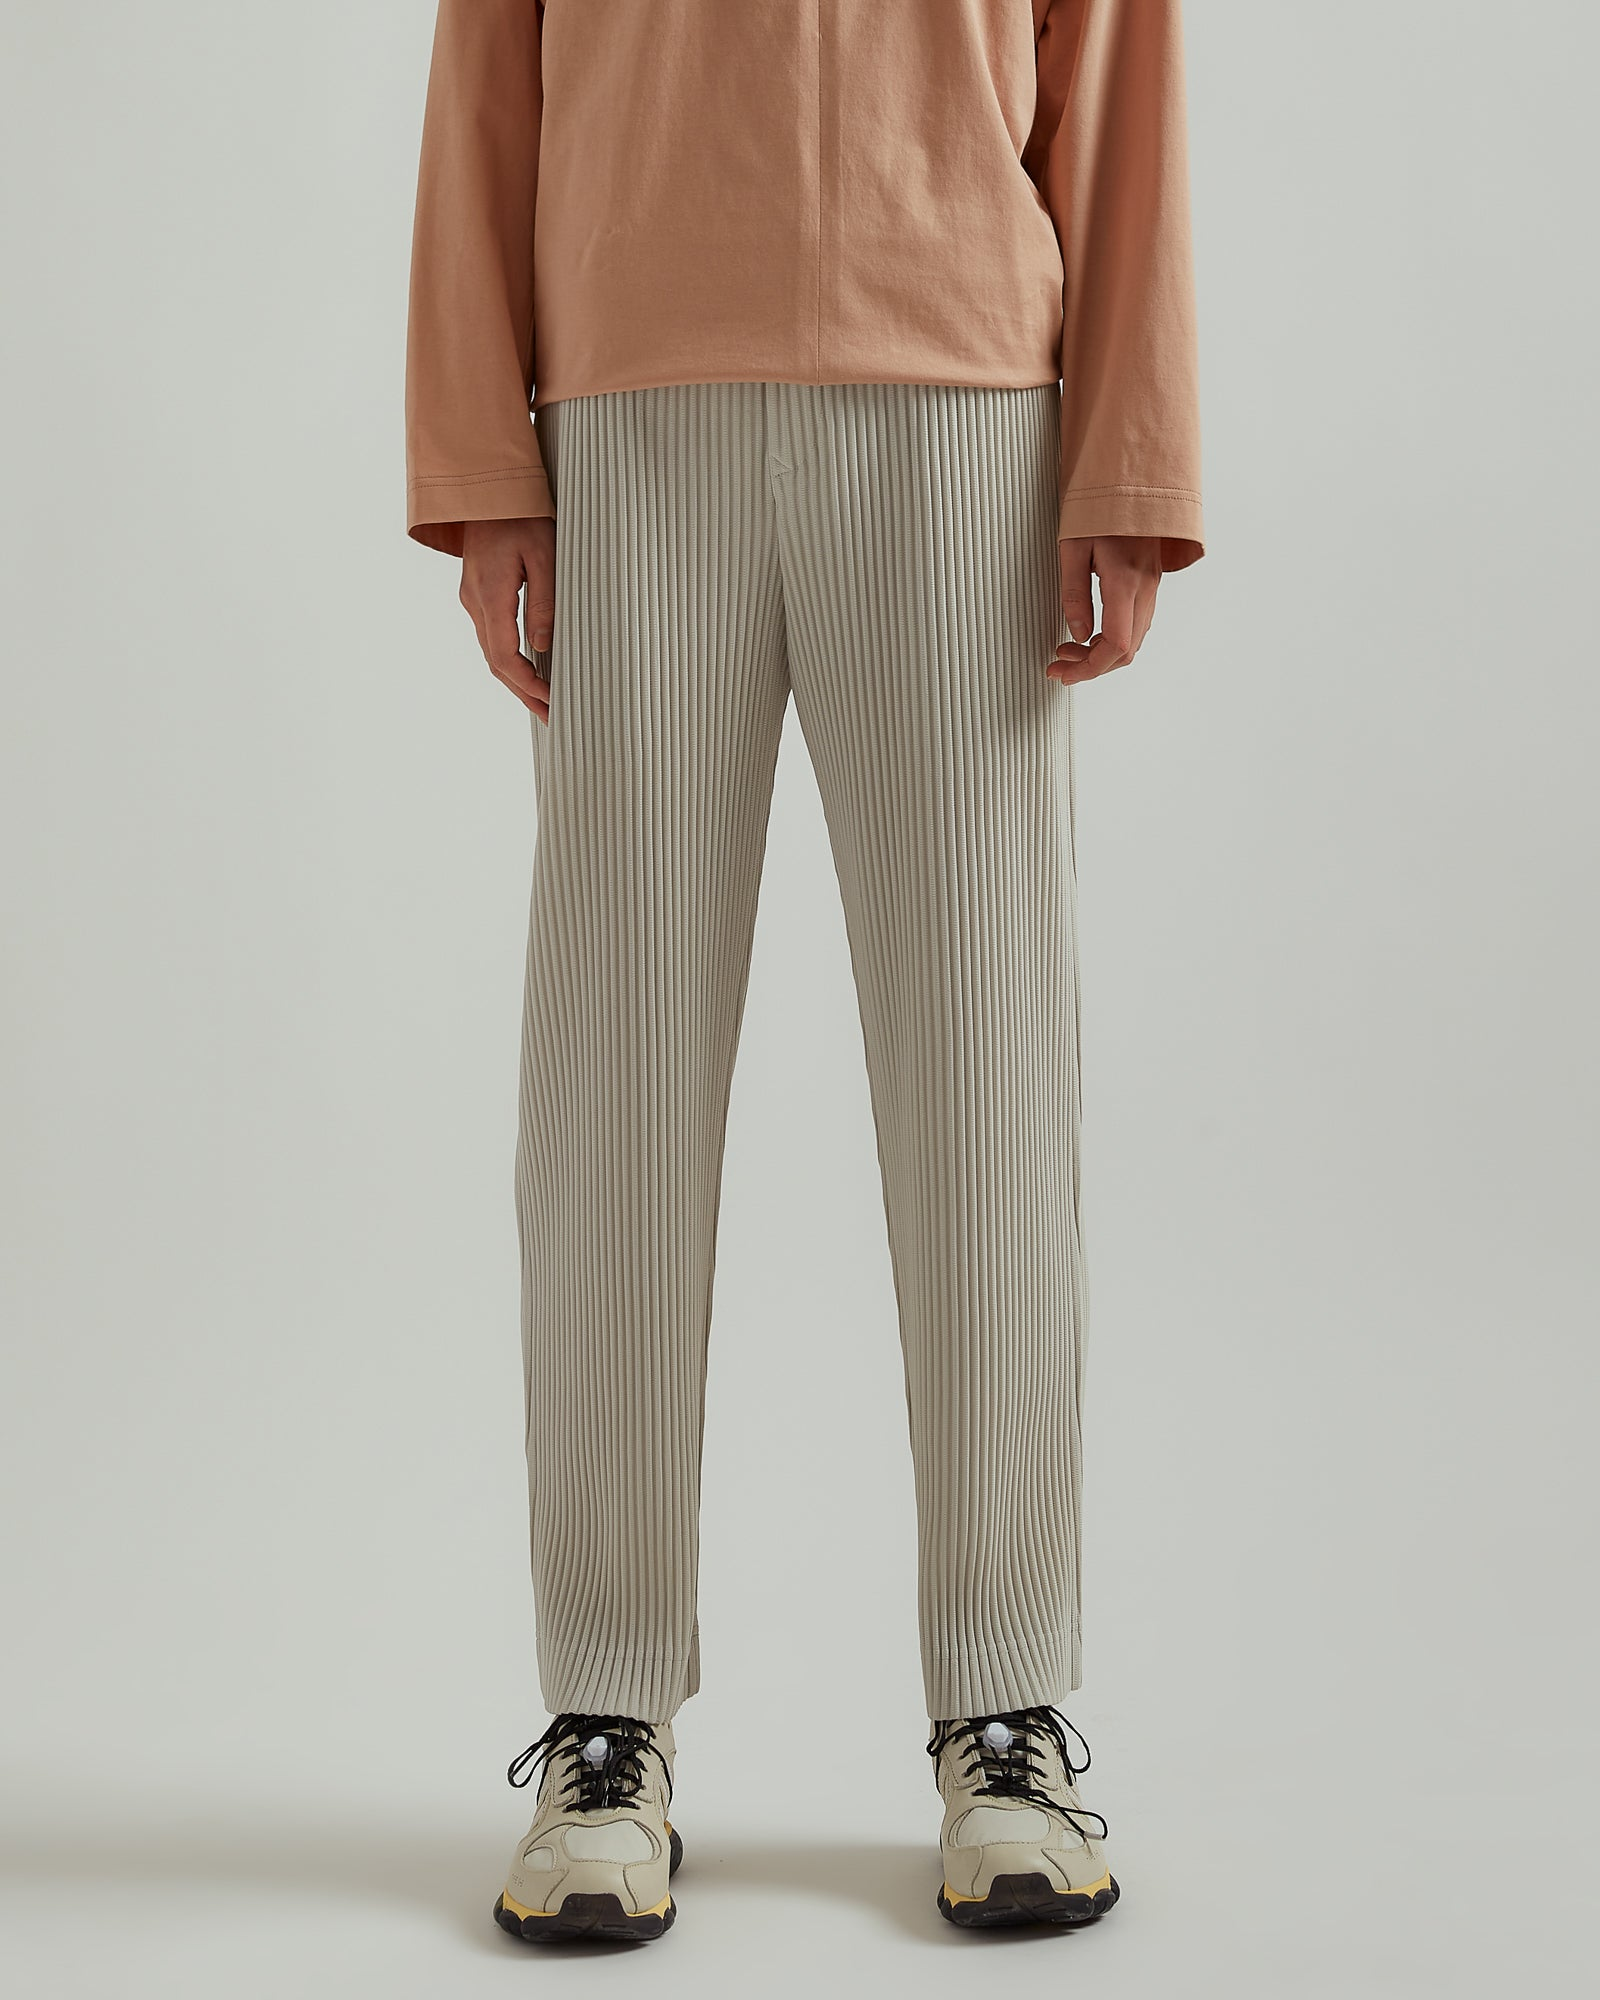 Straight Leg Trousers in Crème